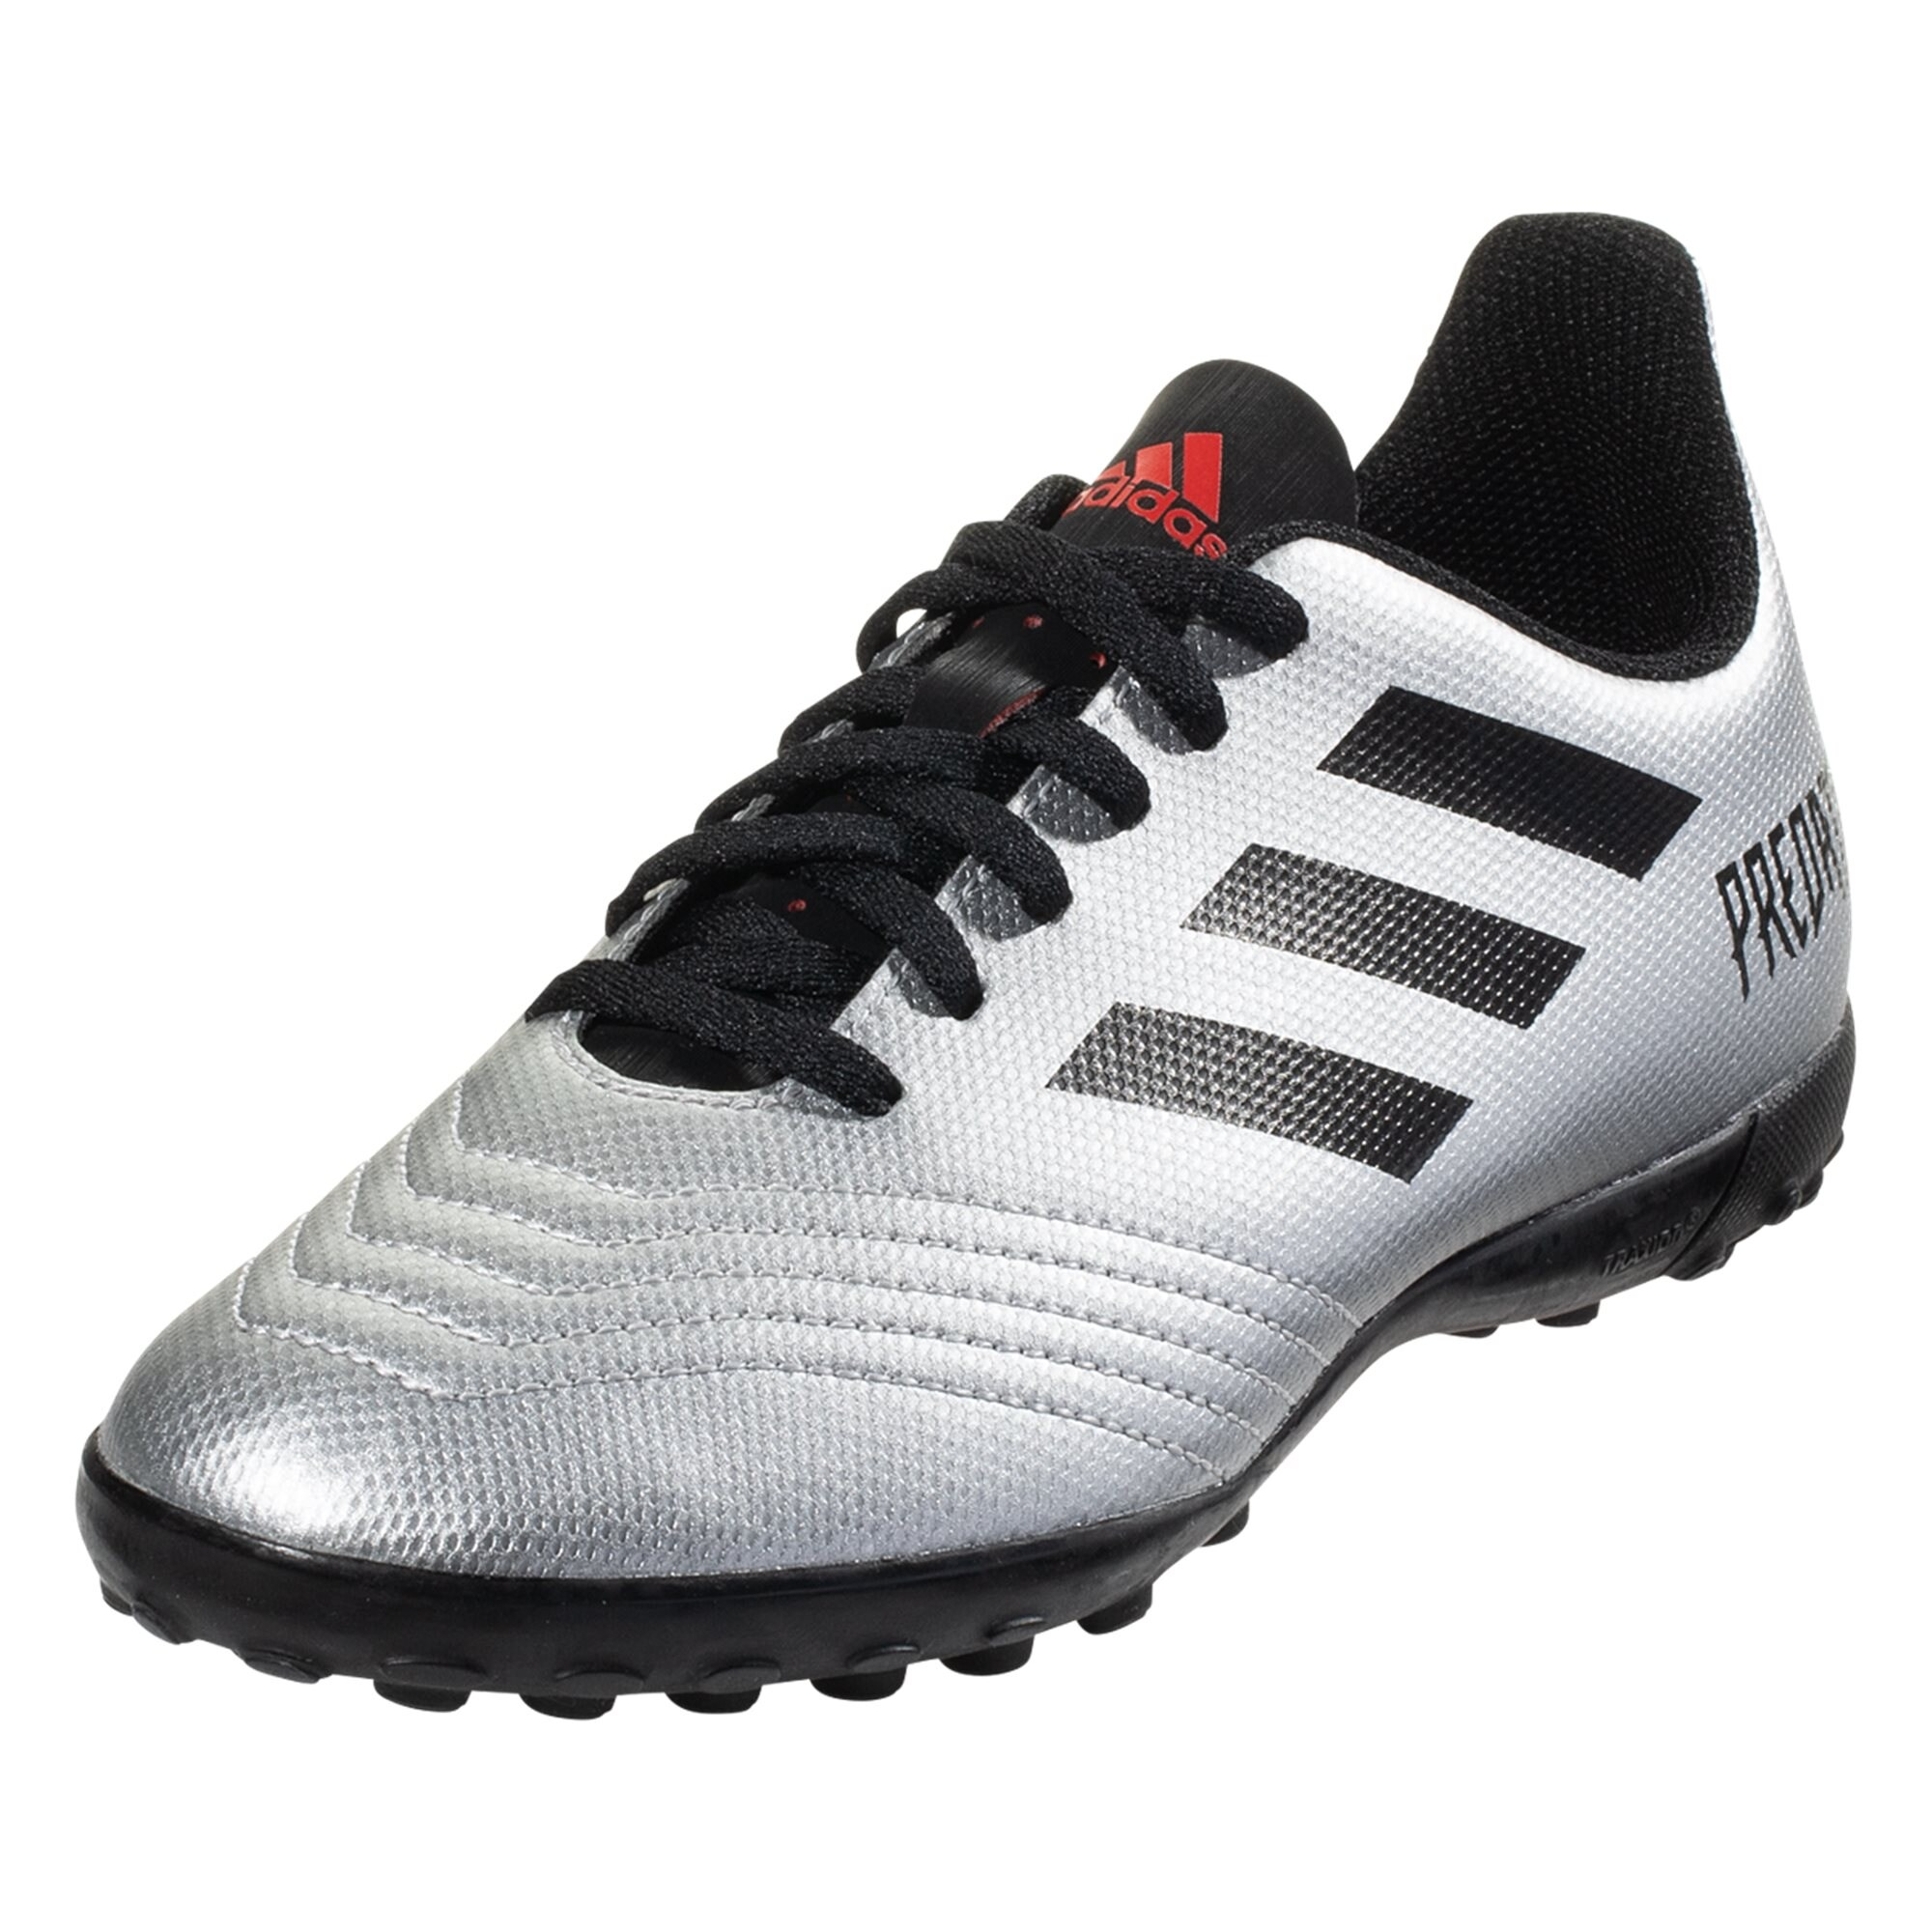 adidas Predator 19.4 TF Artificial Turf Shoe - Metallic Silver/Black/Hi-Res Red